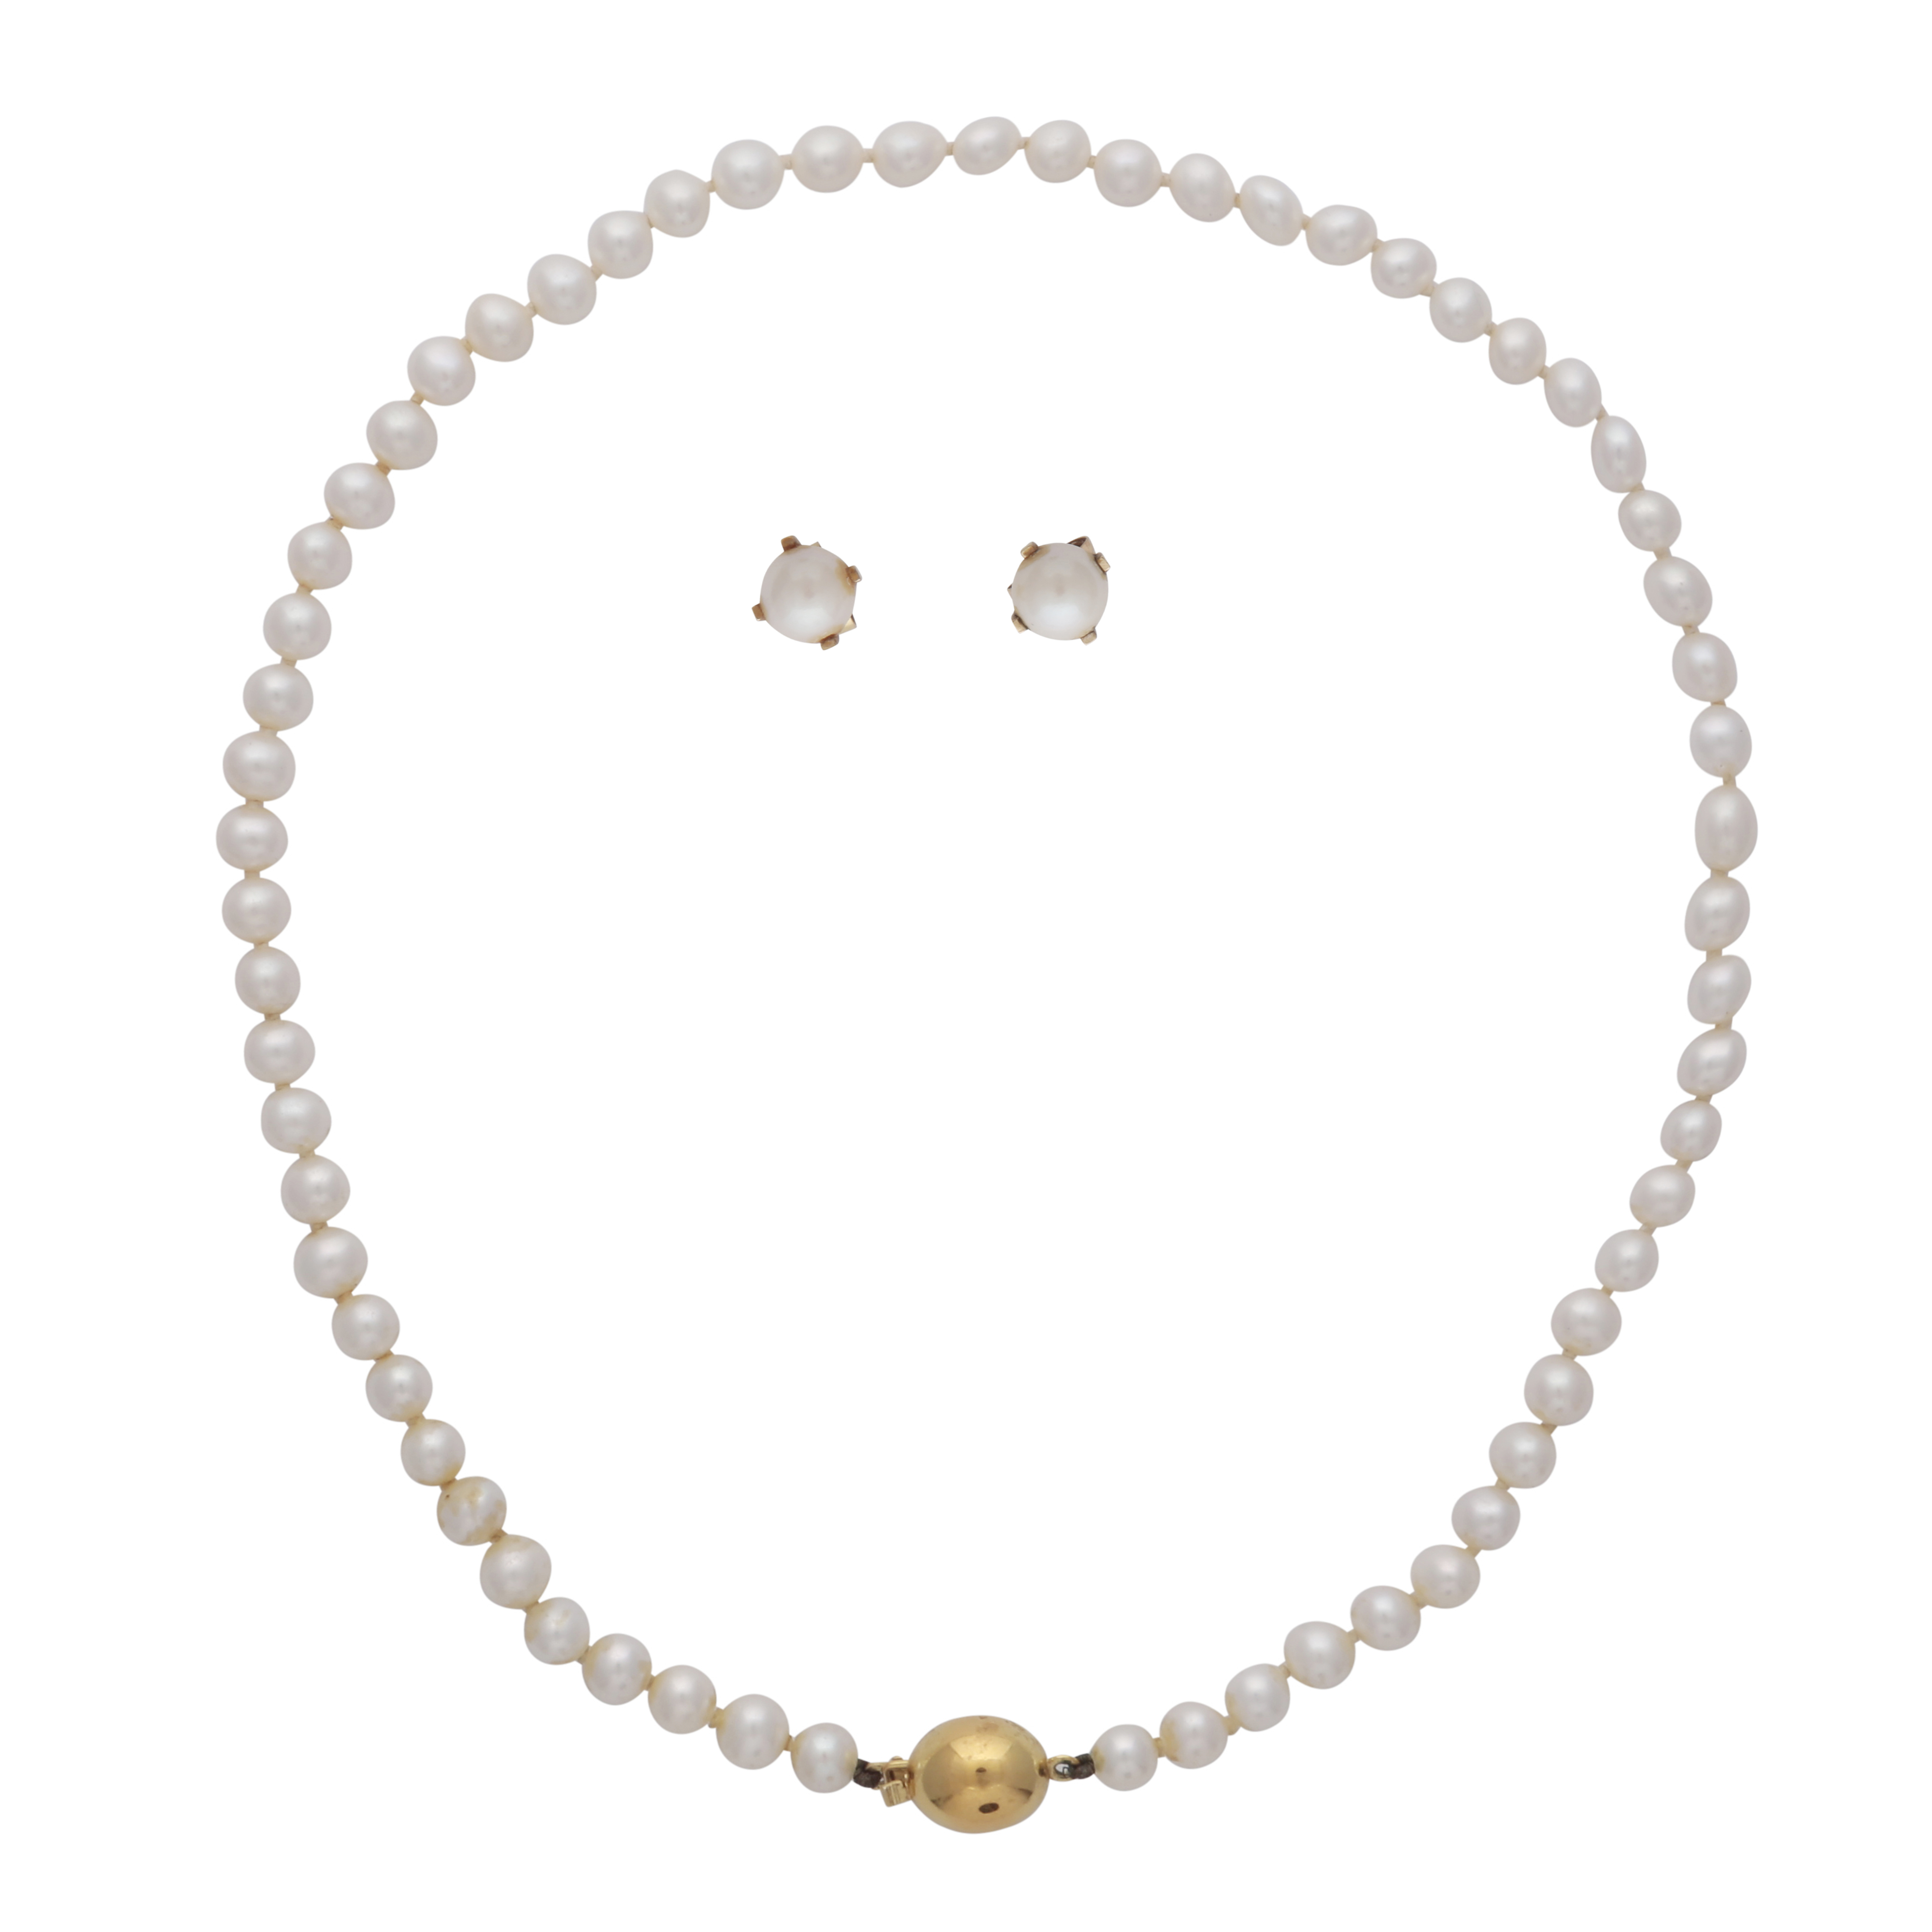 Los 172 - A pearl necklace with 9ct yellow gold clasp, together with a pair of pearl earrings, also in 9ct